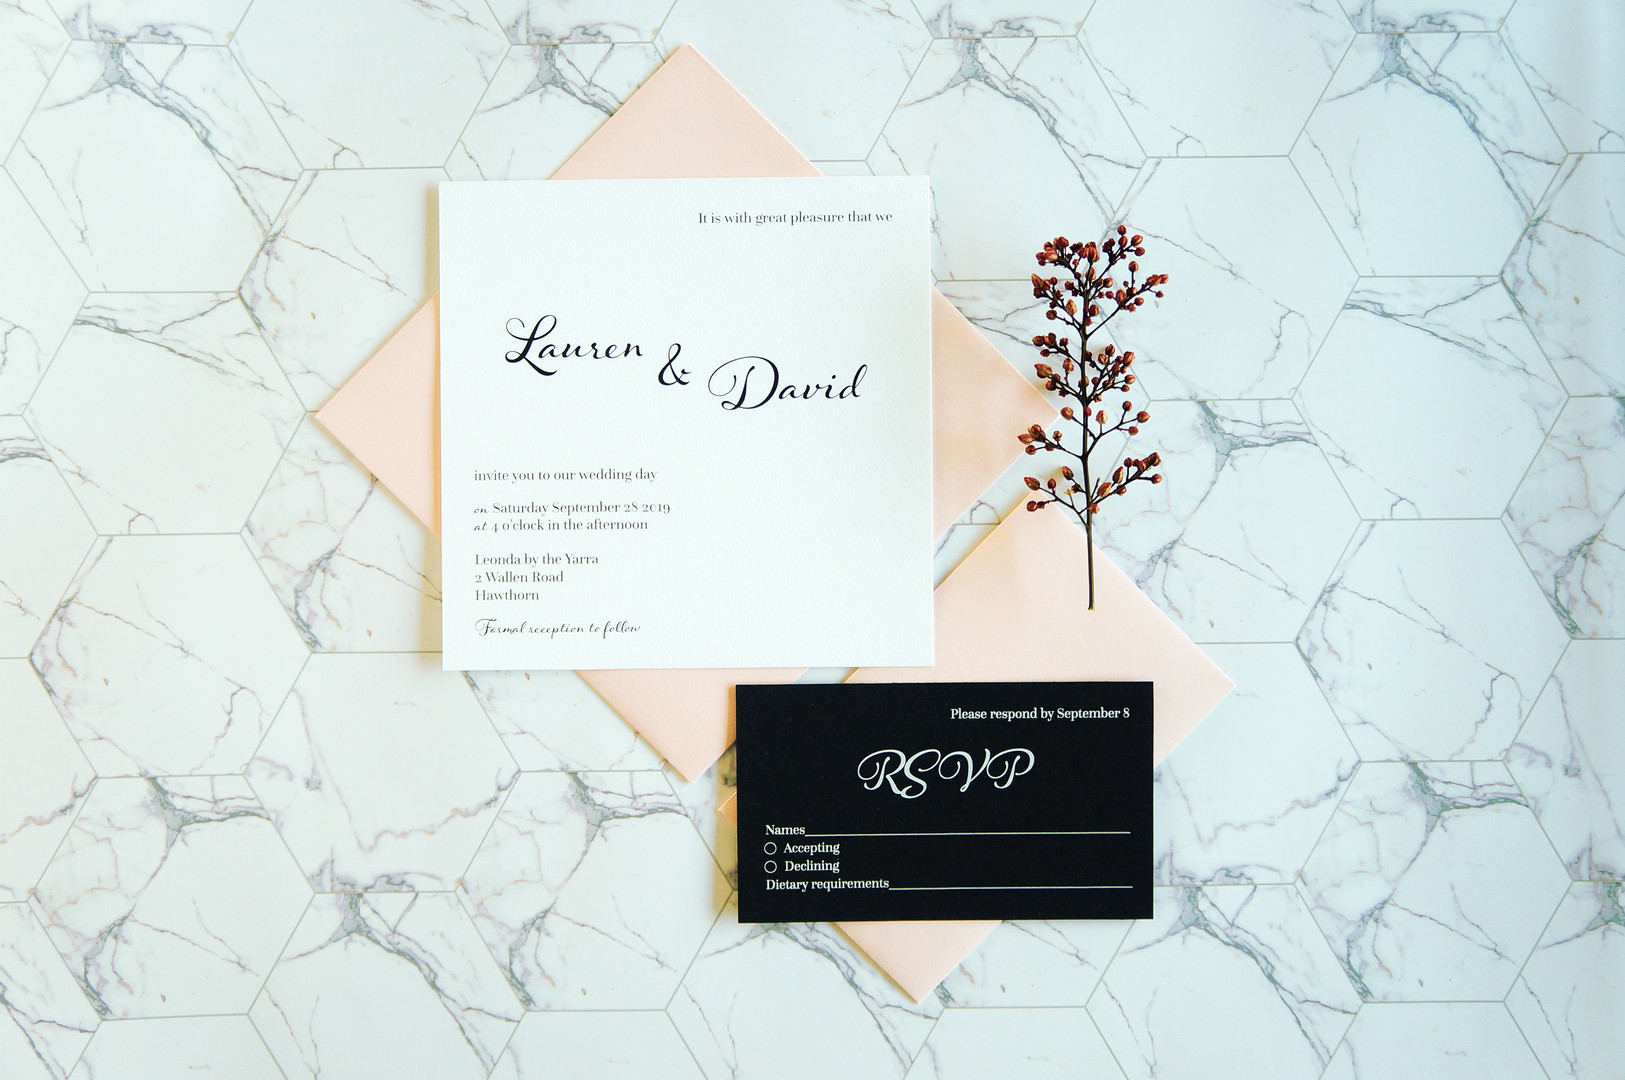 Pink and white wedding invitations